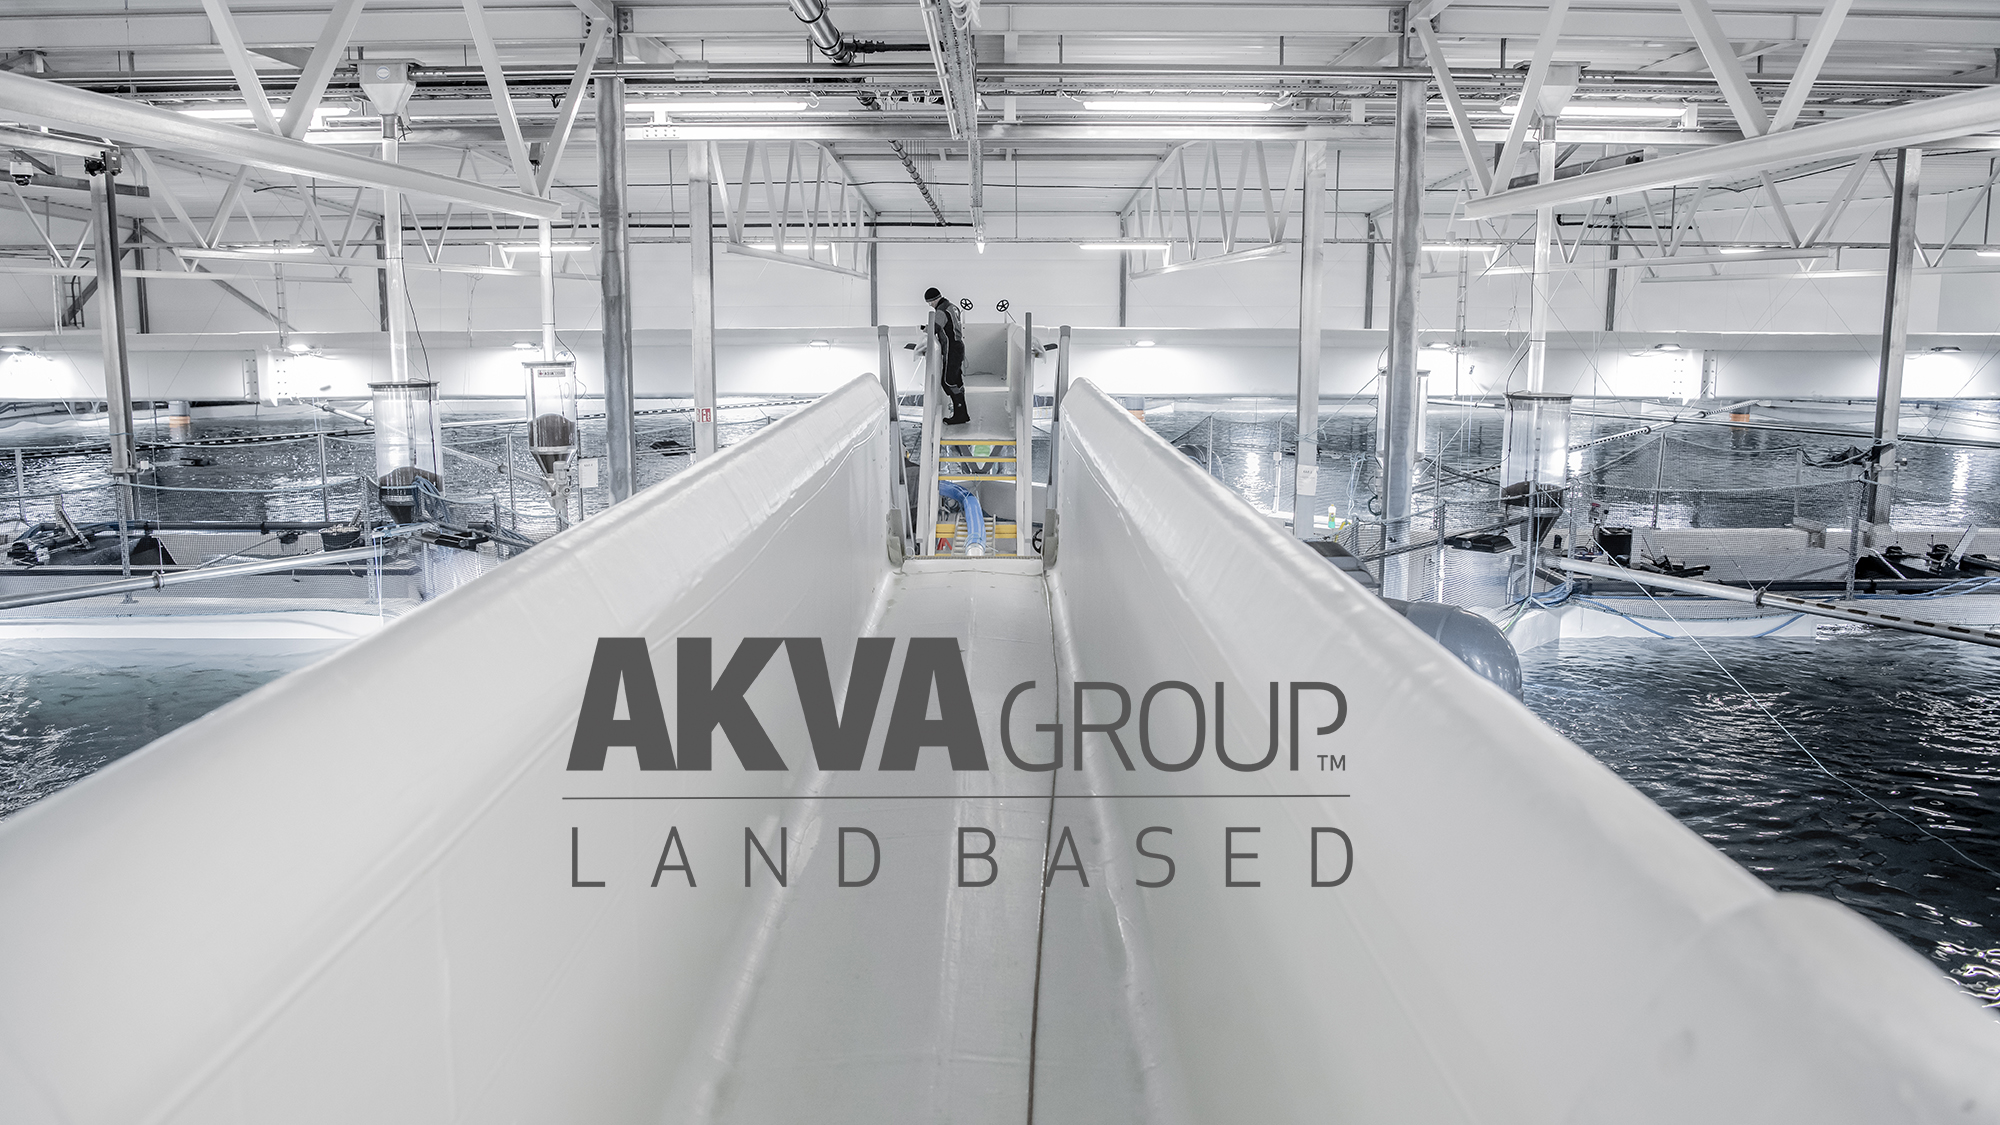 AKVA group Land Based 16x9